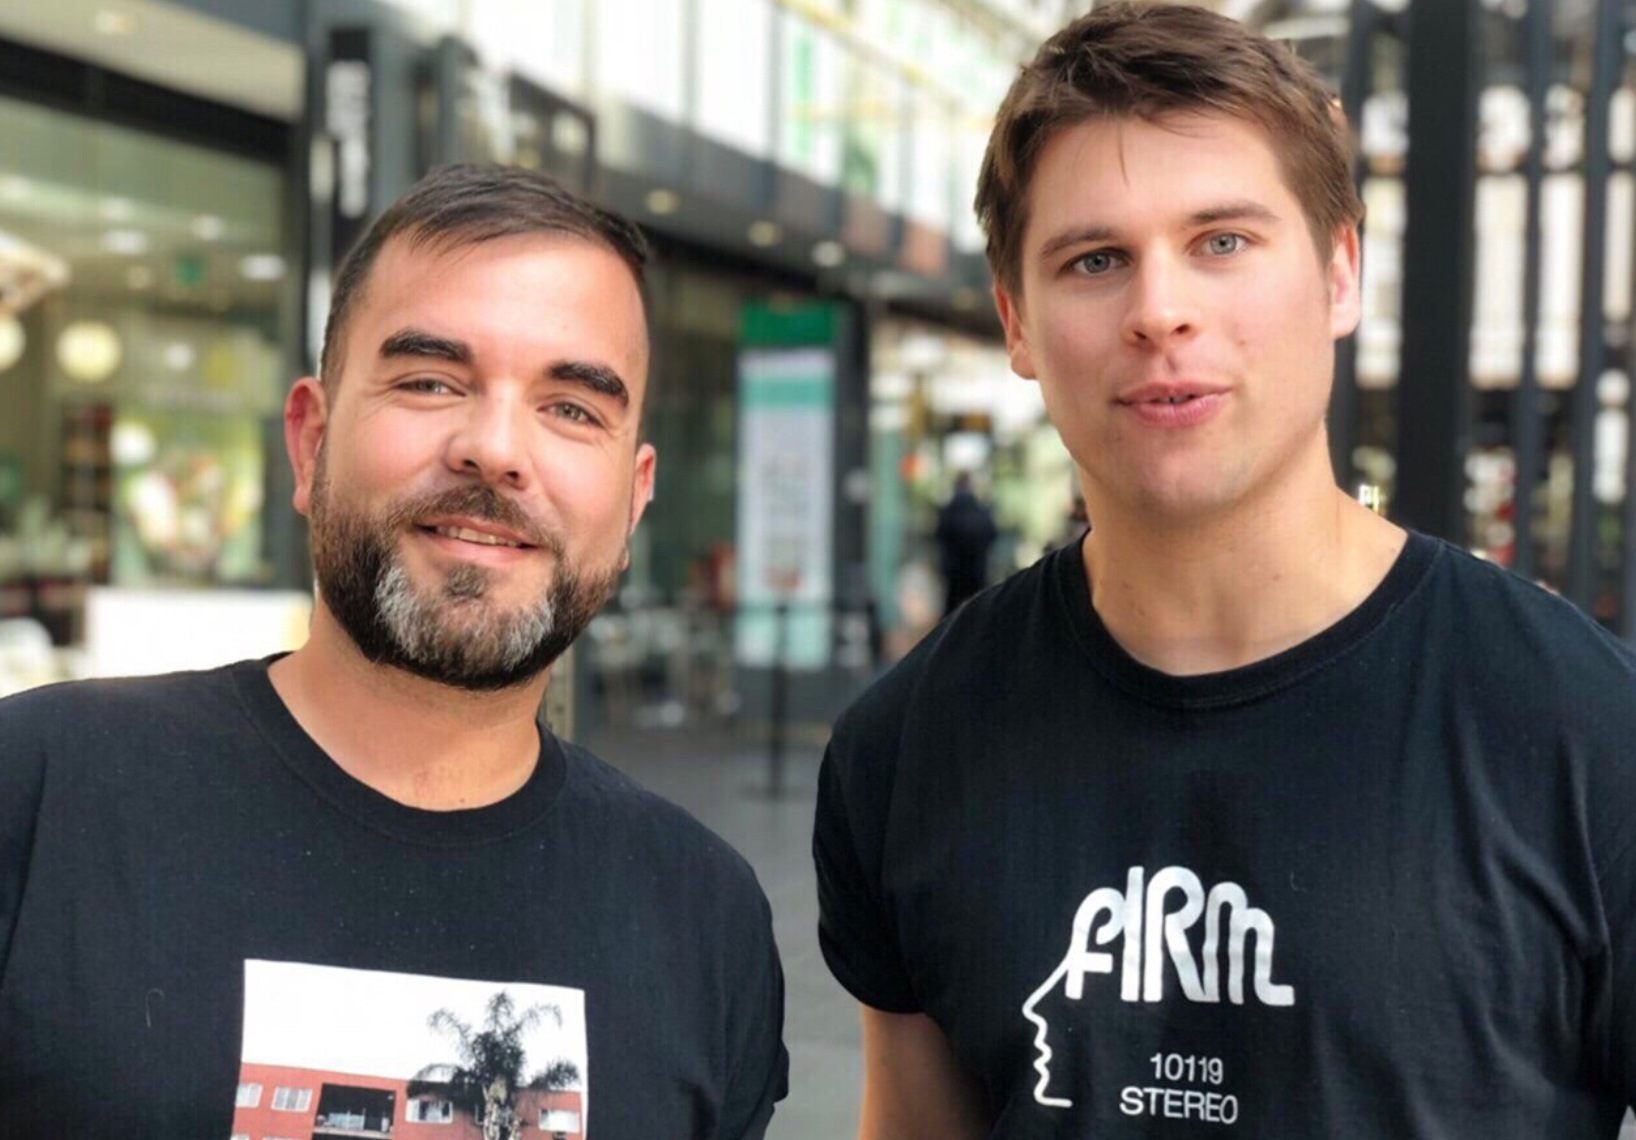 Plant Based News Founders Robbie Lockie and Klaus Mitchell